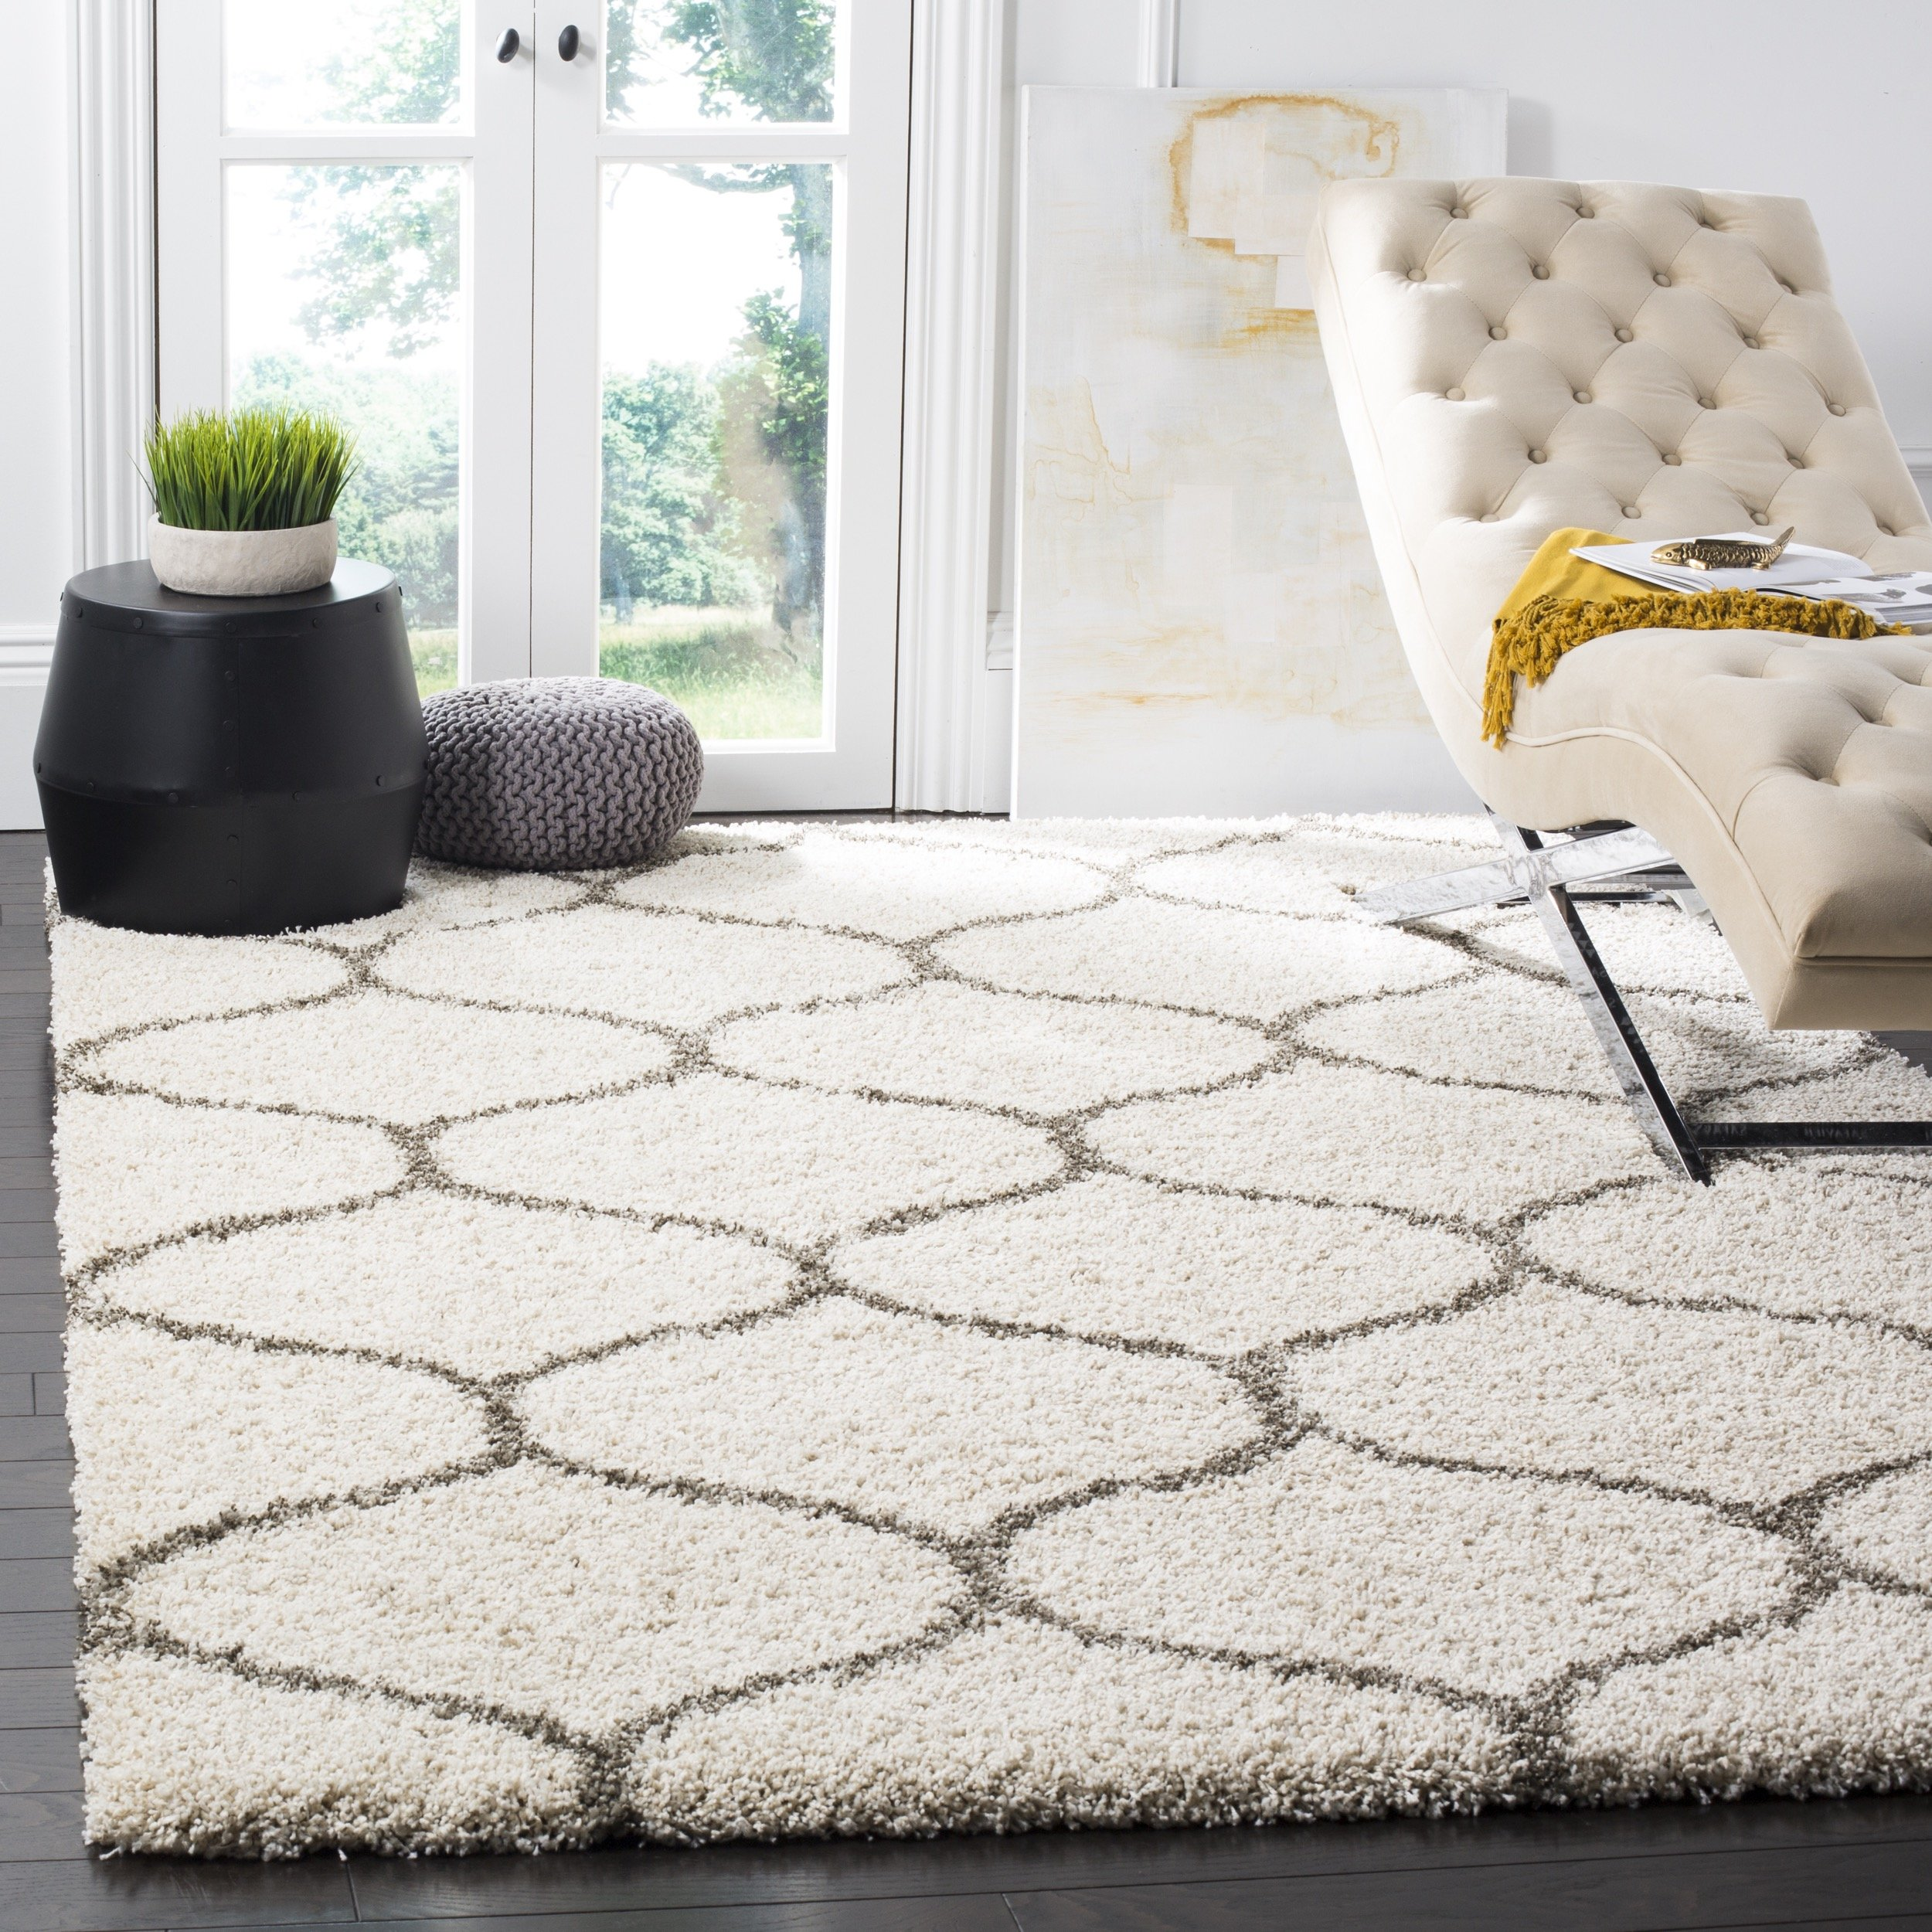 Safavieh Hudson Shag Collection SGH280A Ivory and Grey Moroccan Ogee Plush Area Rug (8' x 10') by Safavieh